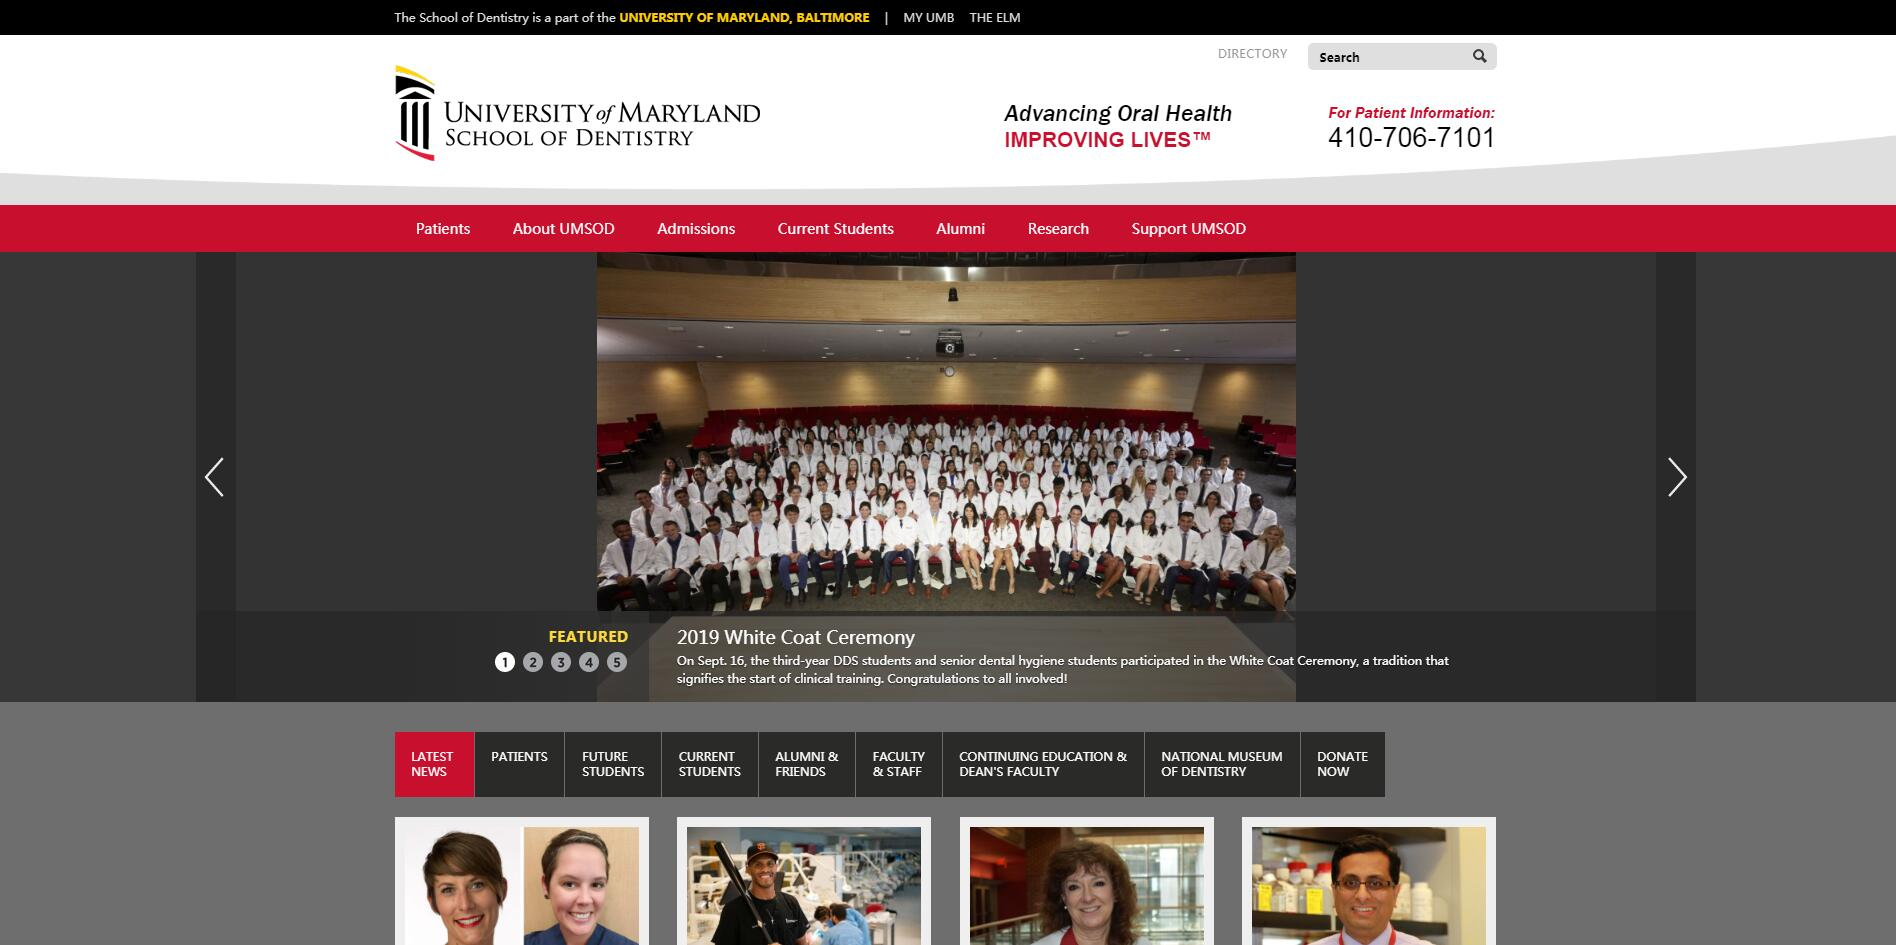 University of Maryland Dental School of the University of Maryland at Baltimore